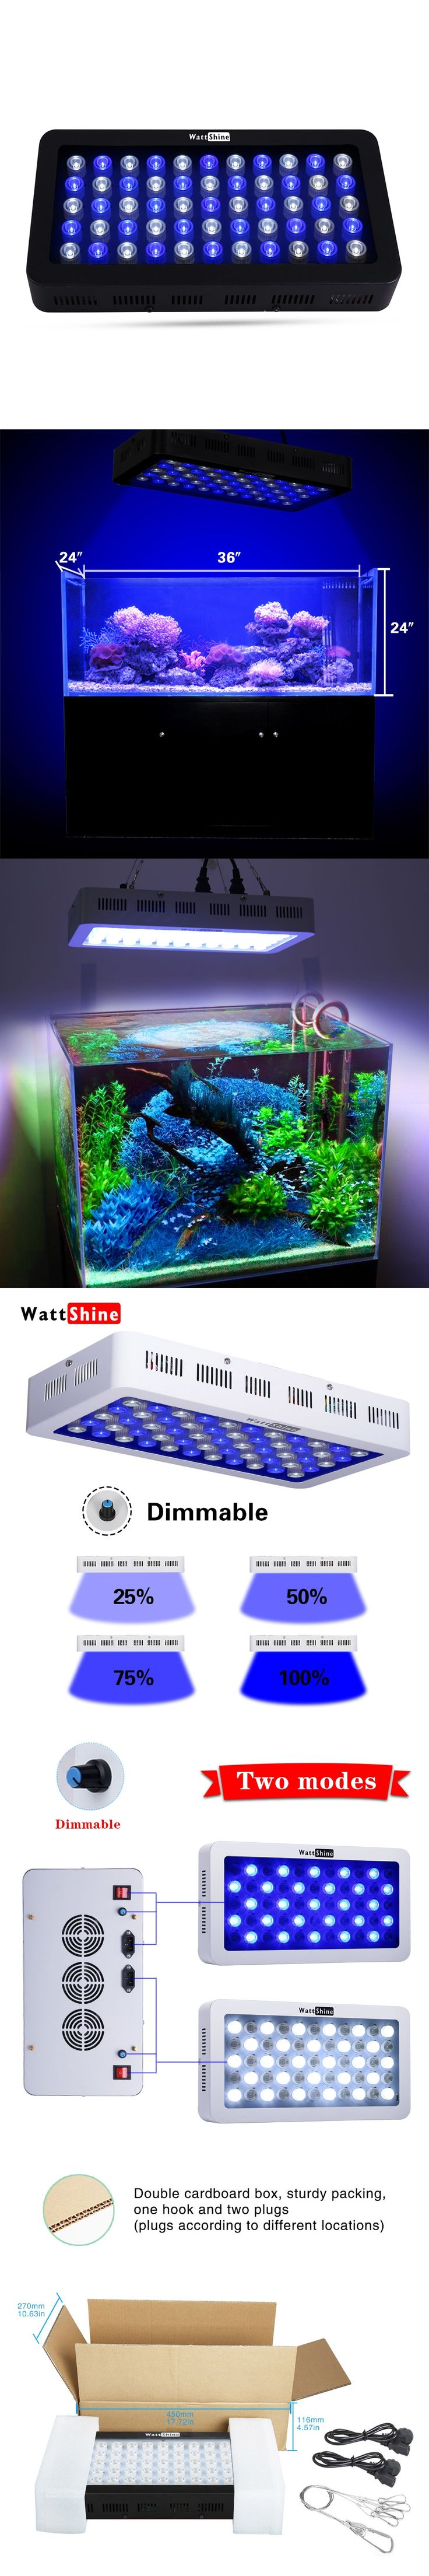 Hot sale dimmable 165w Waterproof LED aquarium light for freshwater saltwater plant Blue White leds for coral reef fish tank